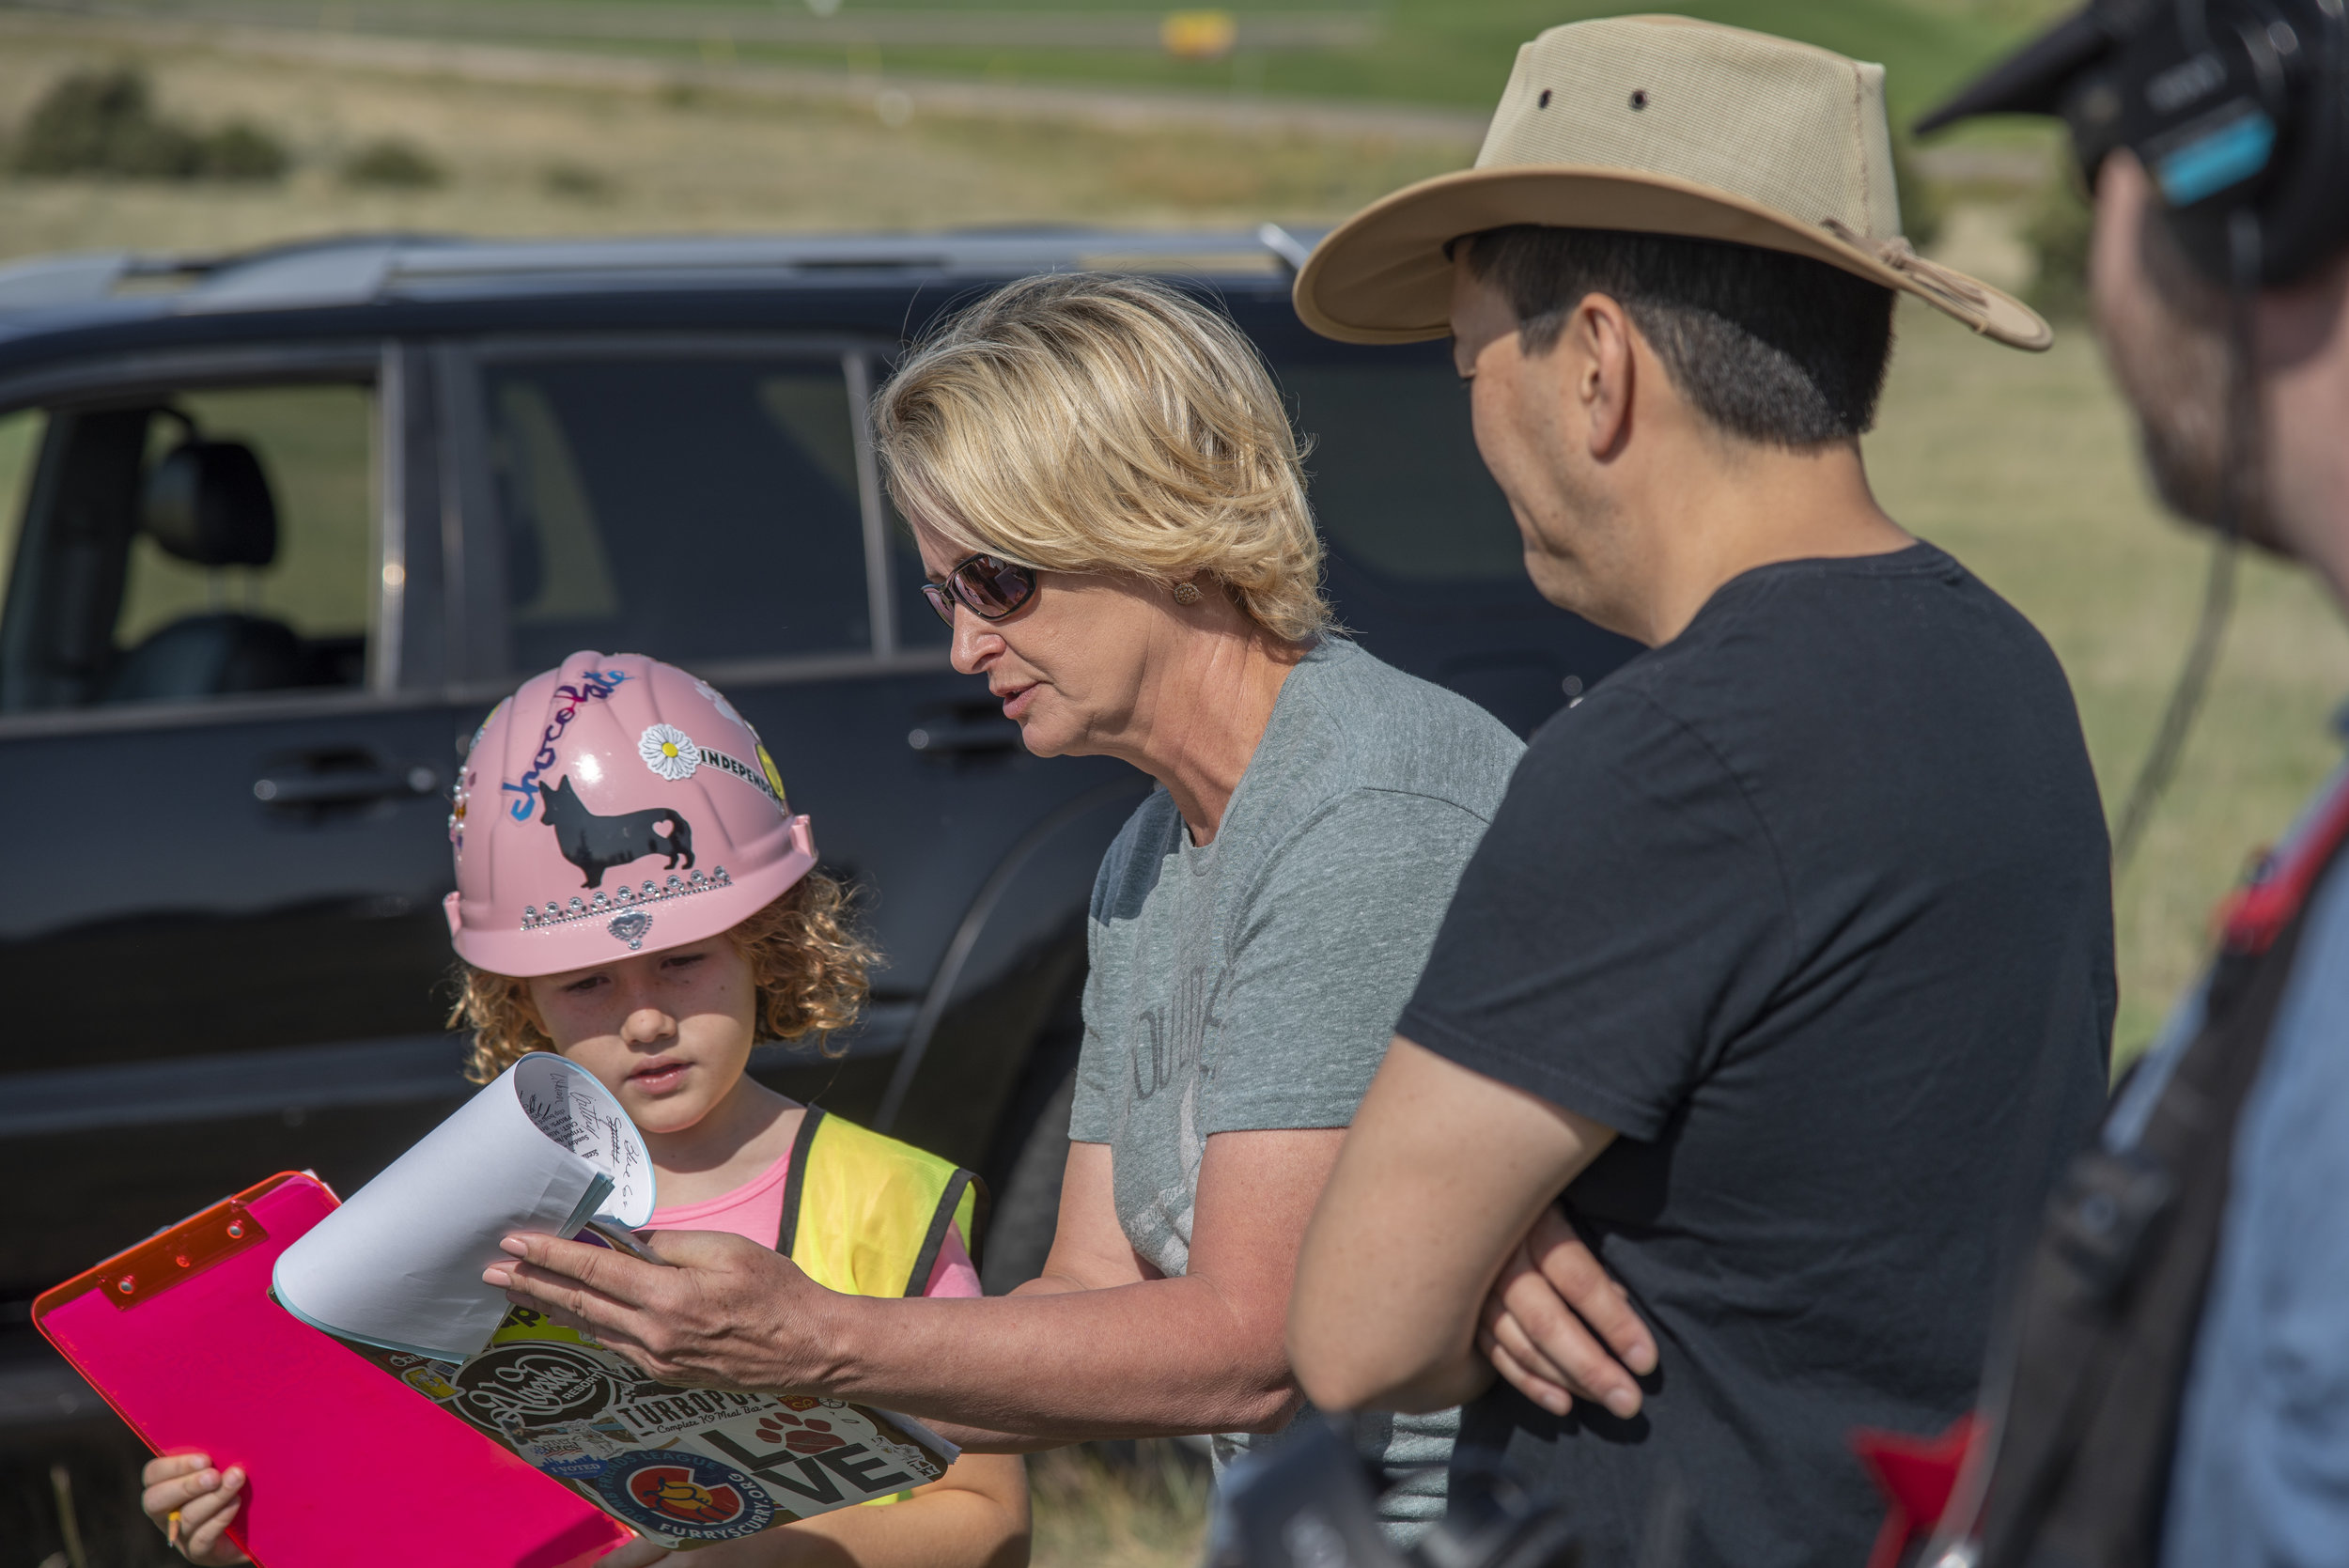 Nev Scharrel and director Lori Kay Allred go over the script during a recent shoot.